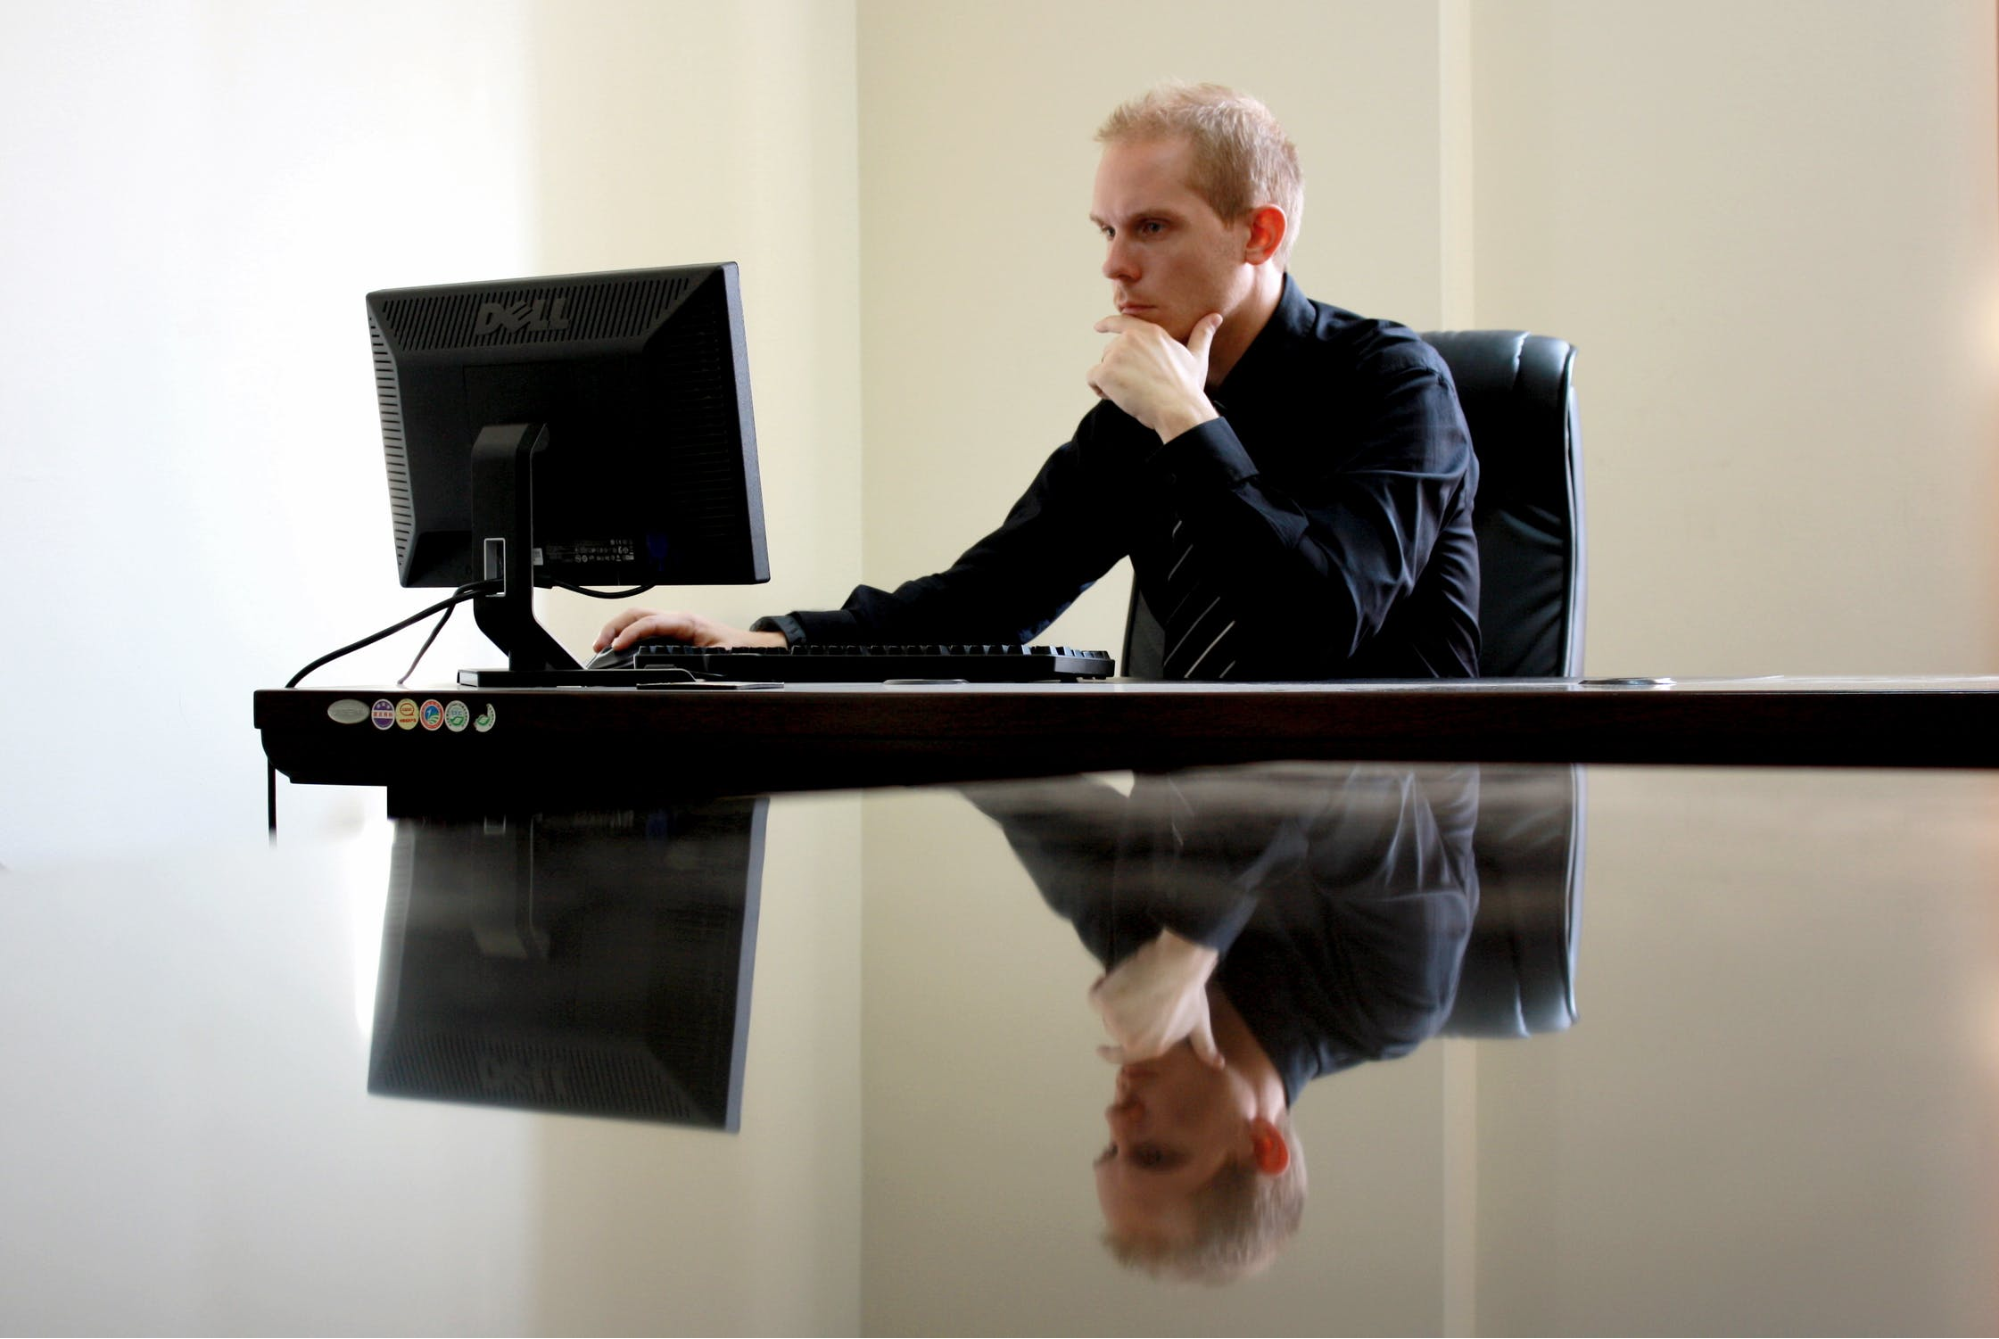 Man working in a quiet space in collaborative workspace